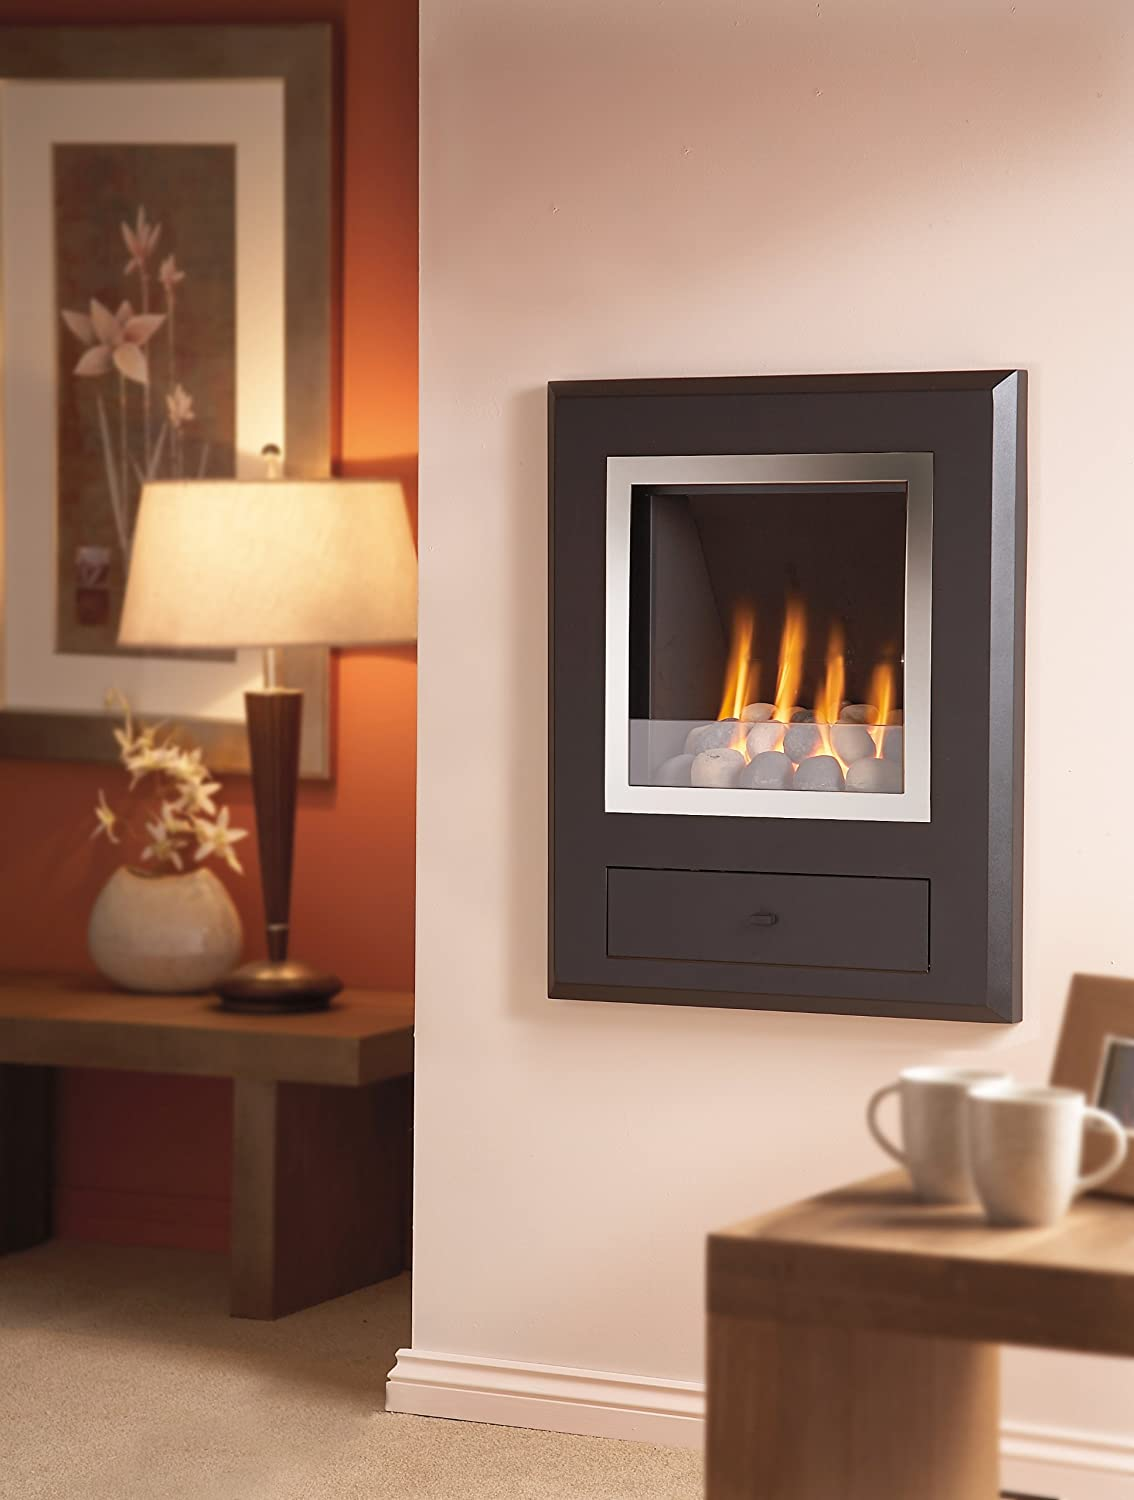 hole in the wall finesse gas fire amazon co uk kitchen u0026 home